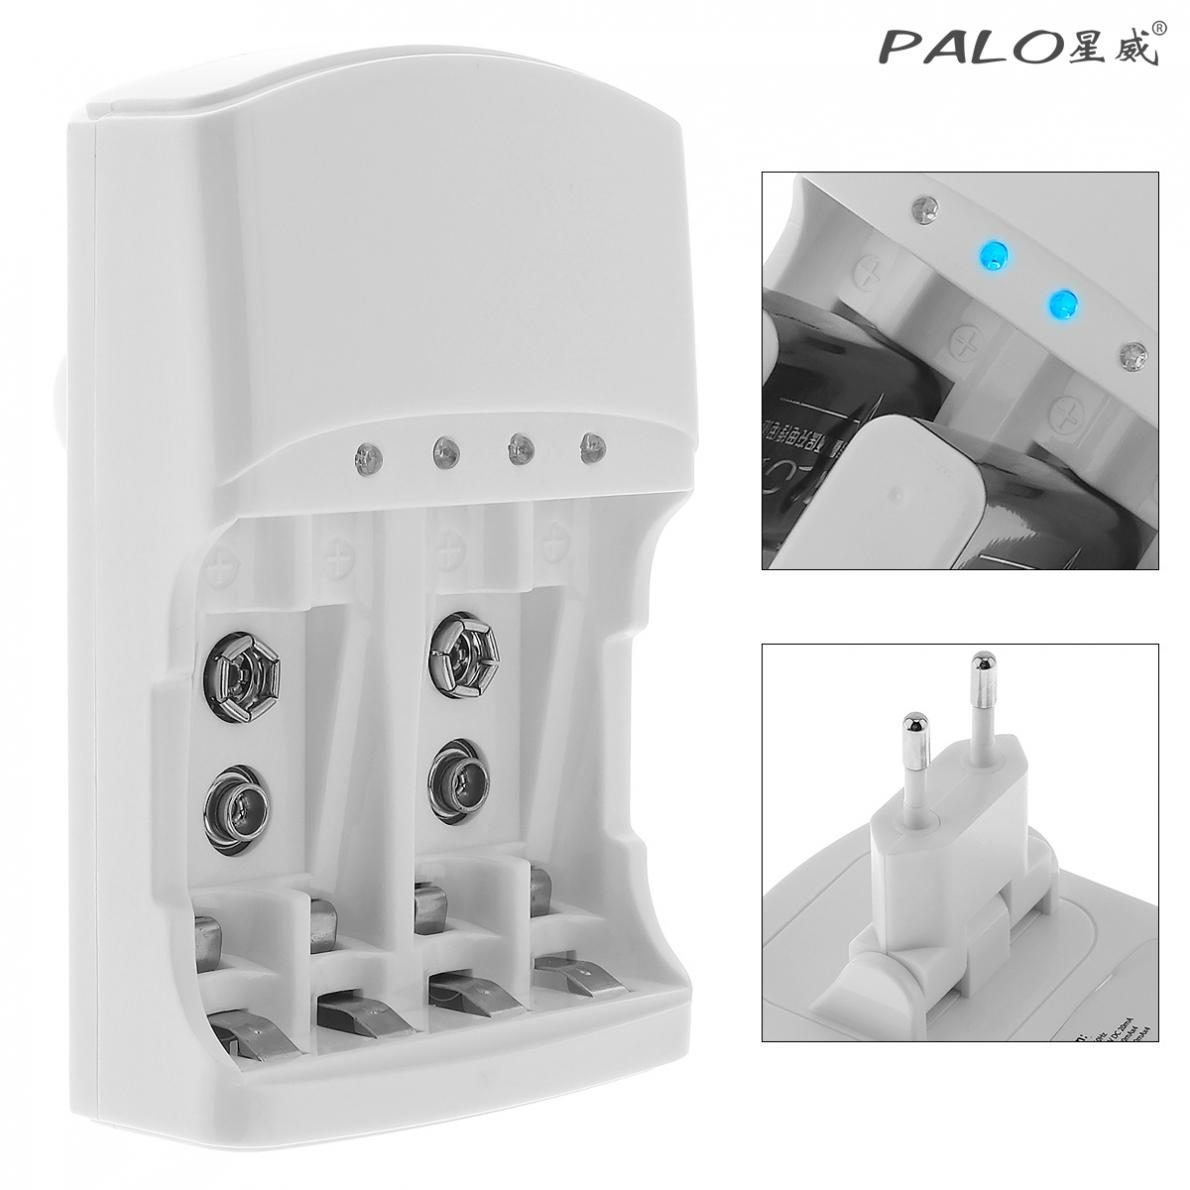 PALO 4 Slots Quick <font><b>Battery</b></font> <font><b>Charger</b></font> Over Temperature Protection for AA AAA <font><b>9V</b></font> Ni-MH NiMH Ni-Cd <font><b>Battery</b></font> Support Mixed Charging image